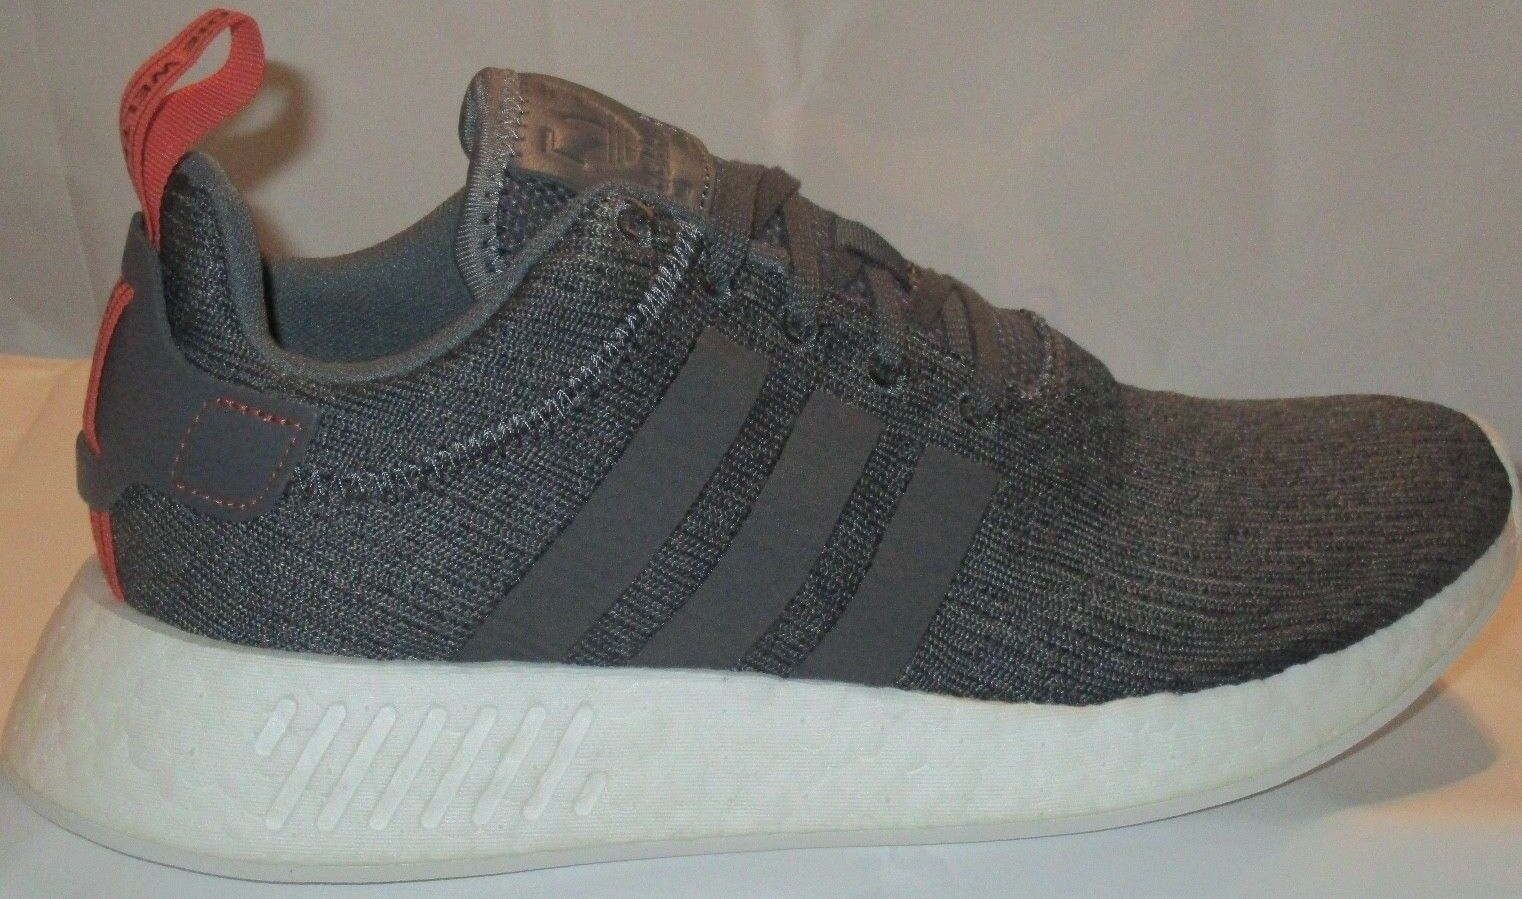 10ab733089a36 adidas NMD R2 Nomad By3014 Grey Future Harvest Sizes 8 to 13 - 9.5 ...